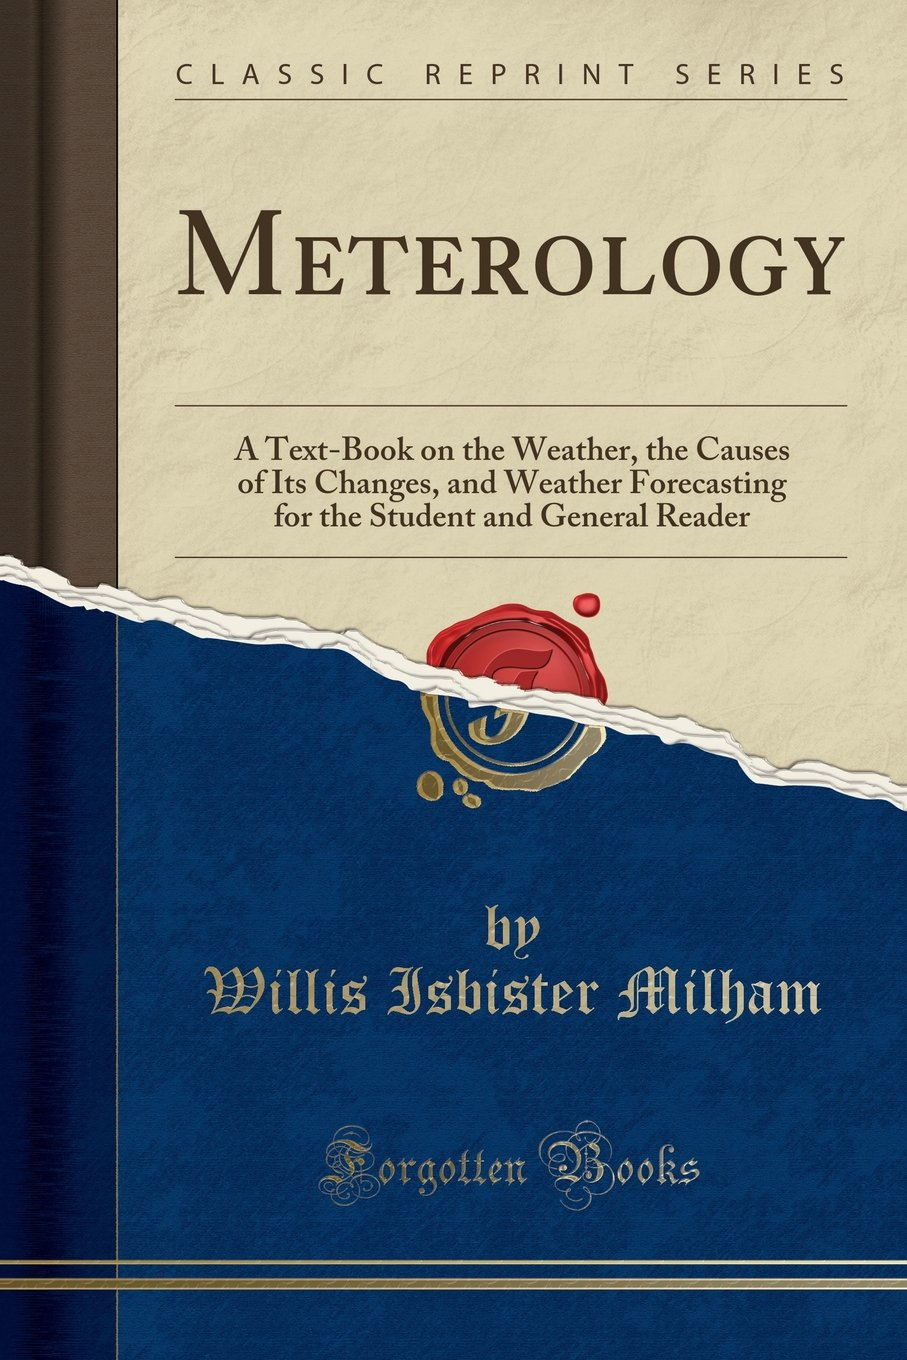 Read Online Meterology: A Text-Book on the Weather, the Causes of Its Changes, and Weather Forecasting for the Student and General Reader (Classic Reprint) ebook